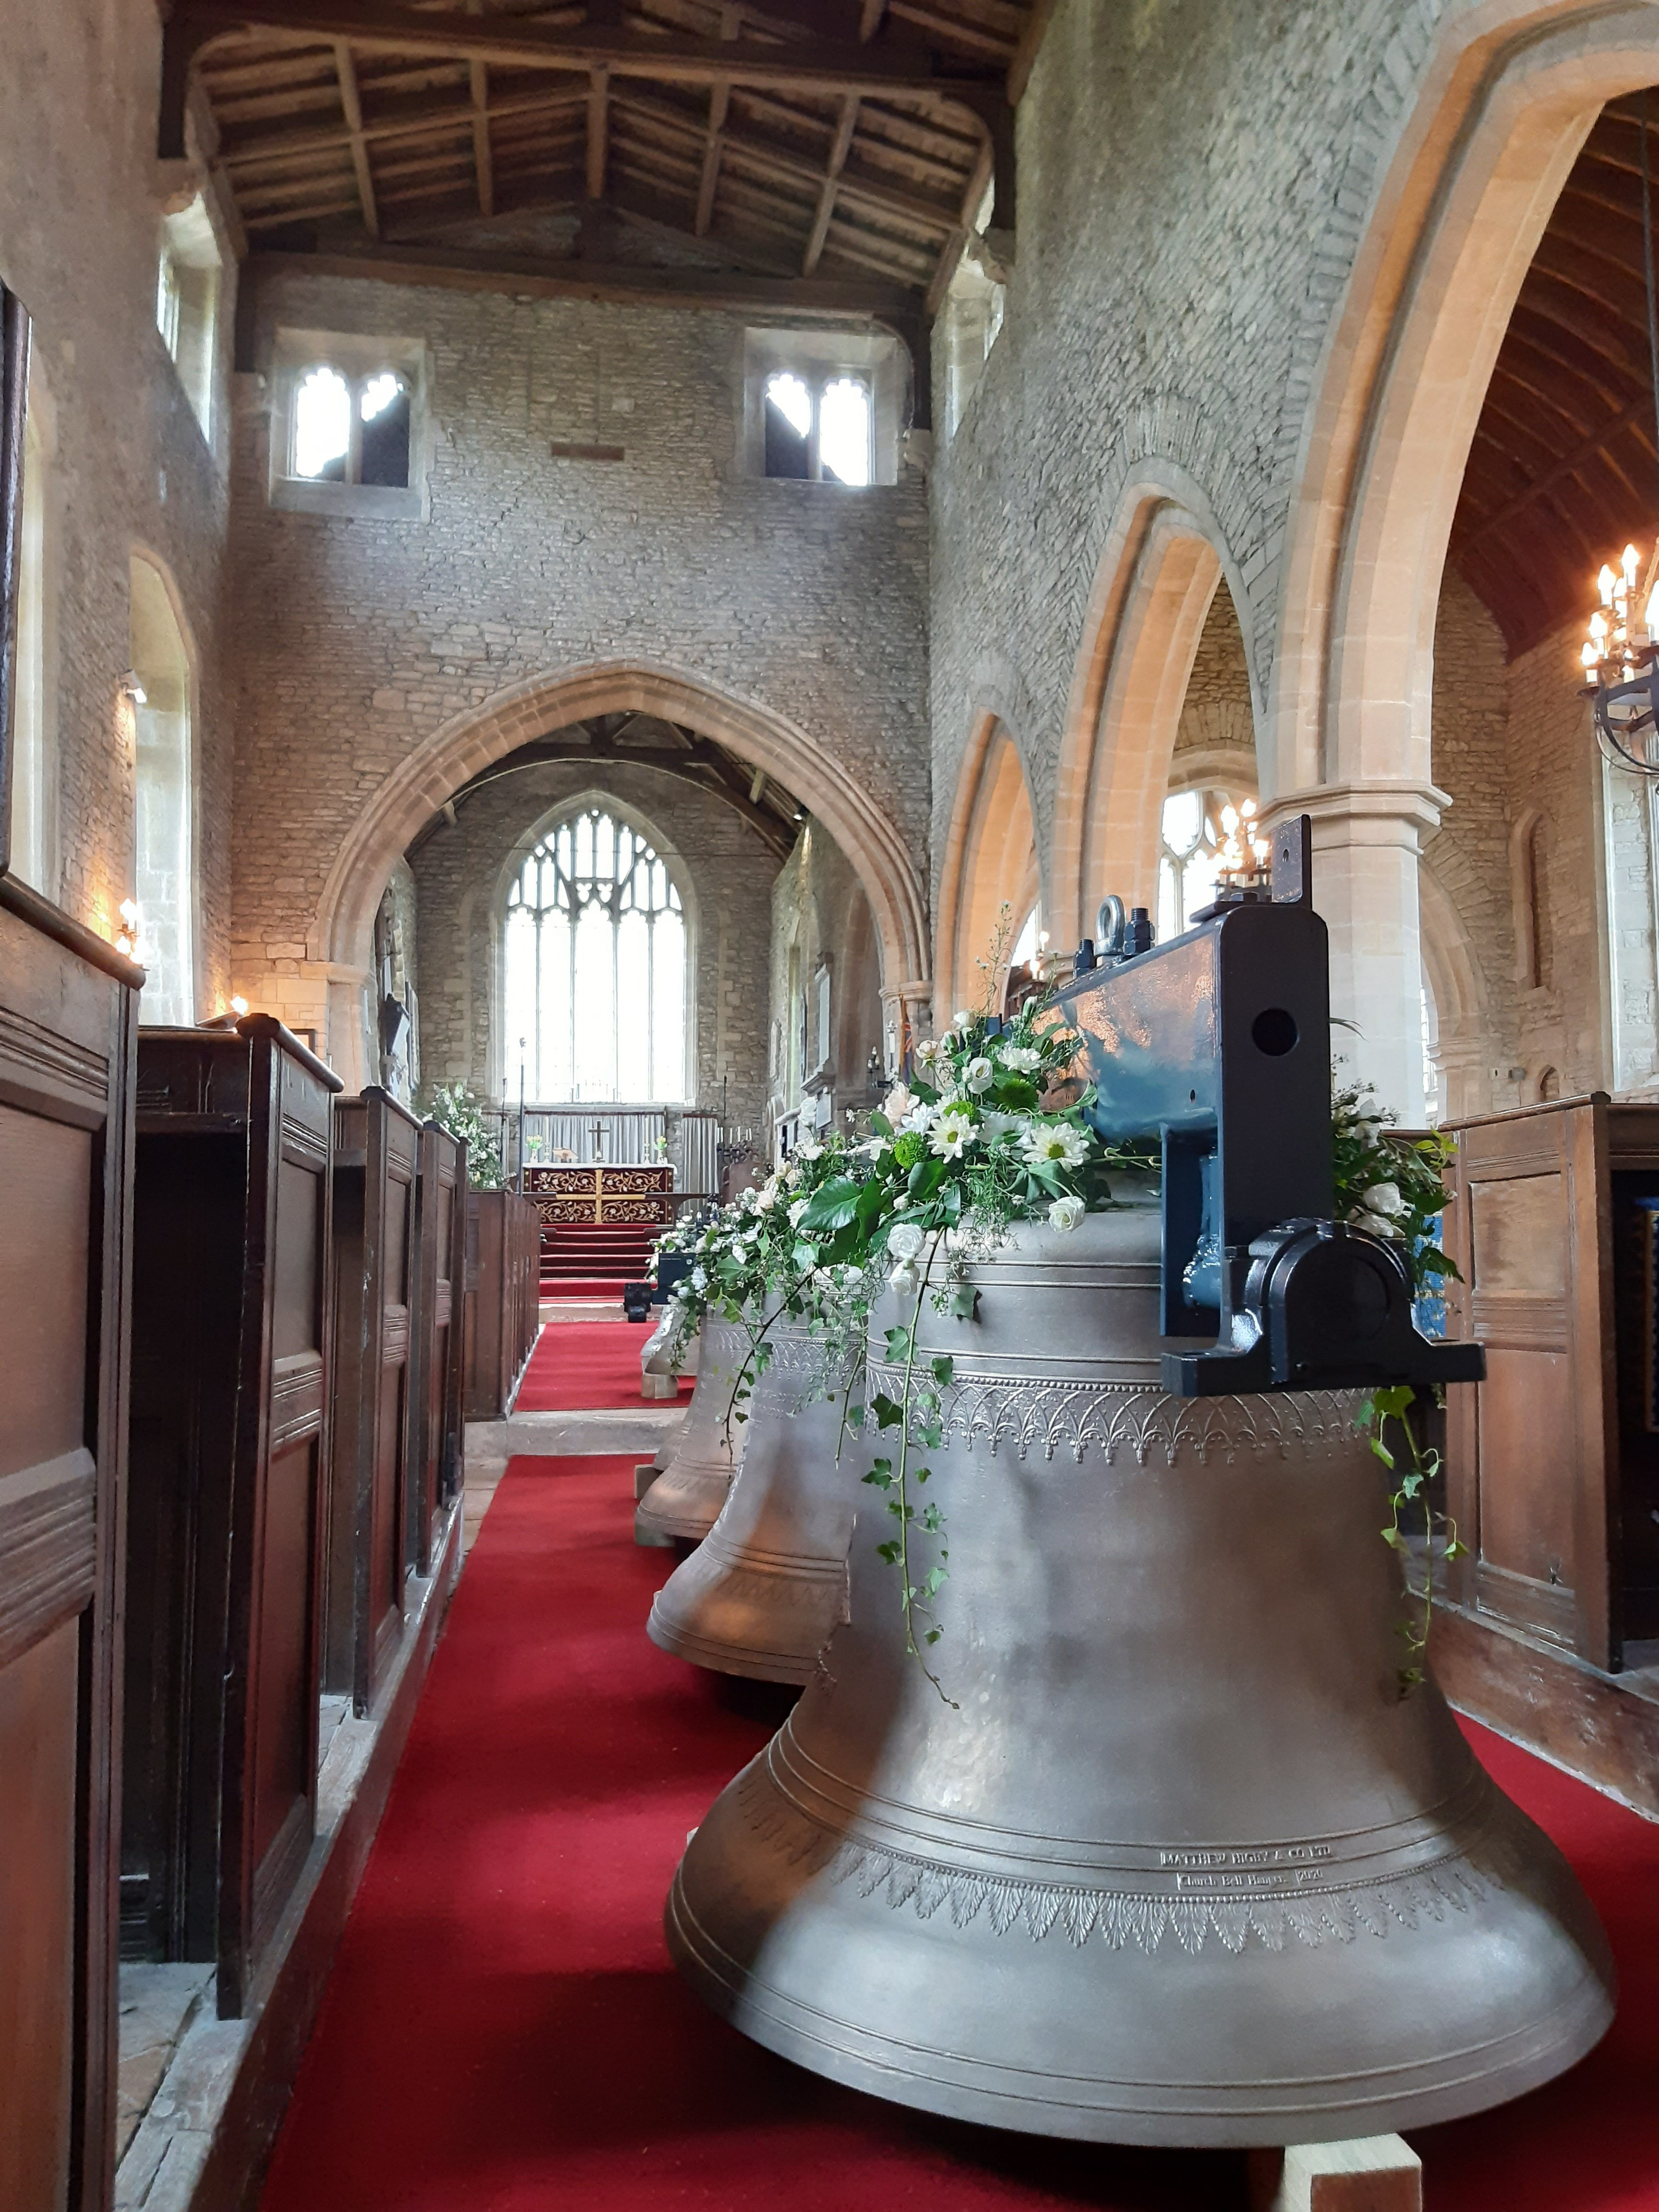 photo of the bells at the blessing service